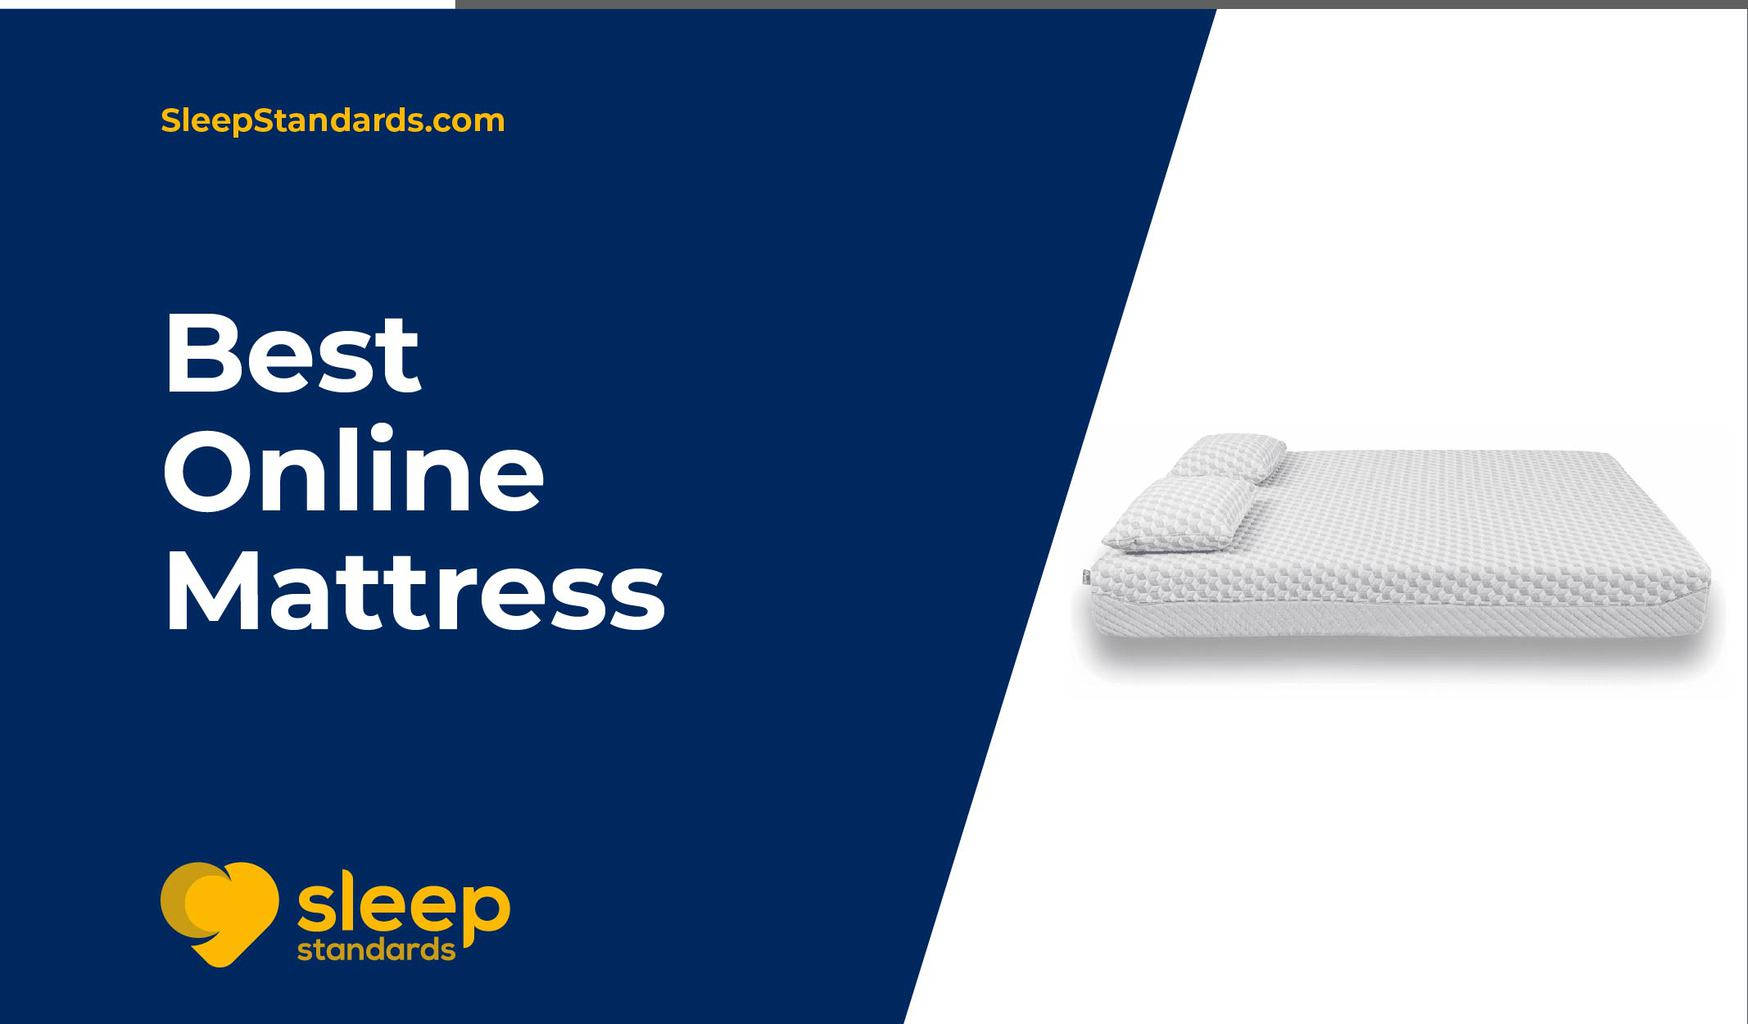 Best Online Mattress